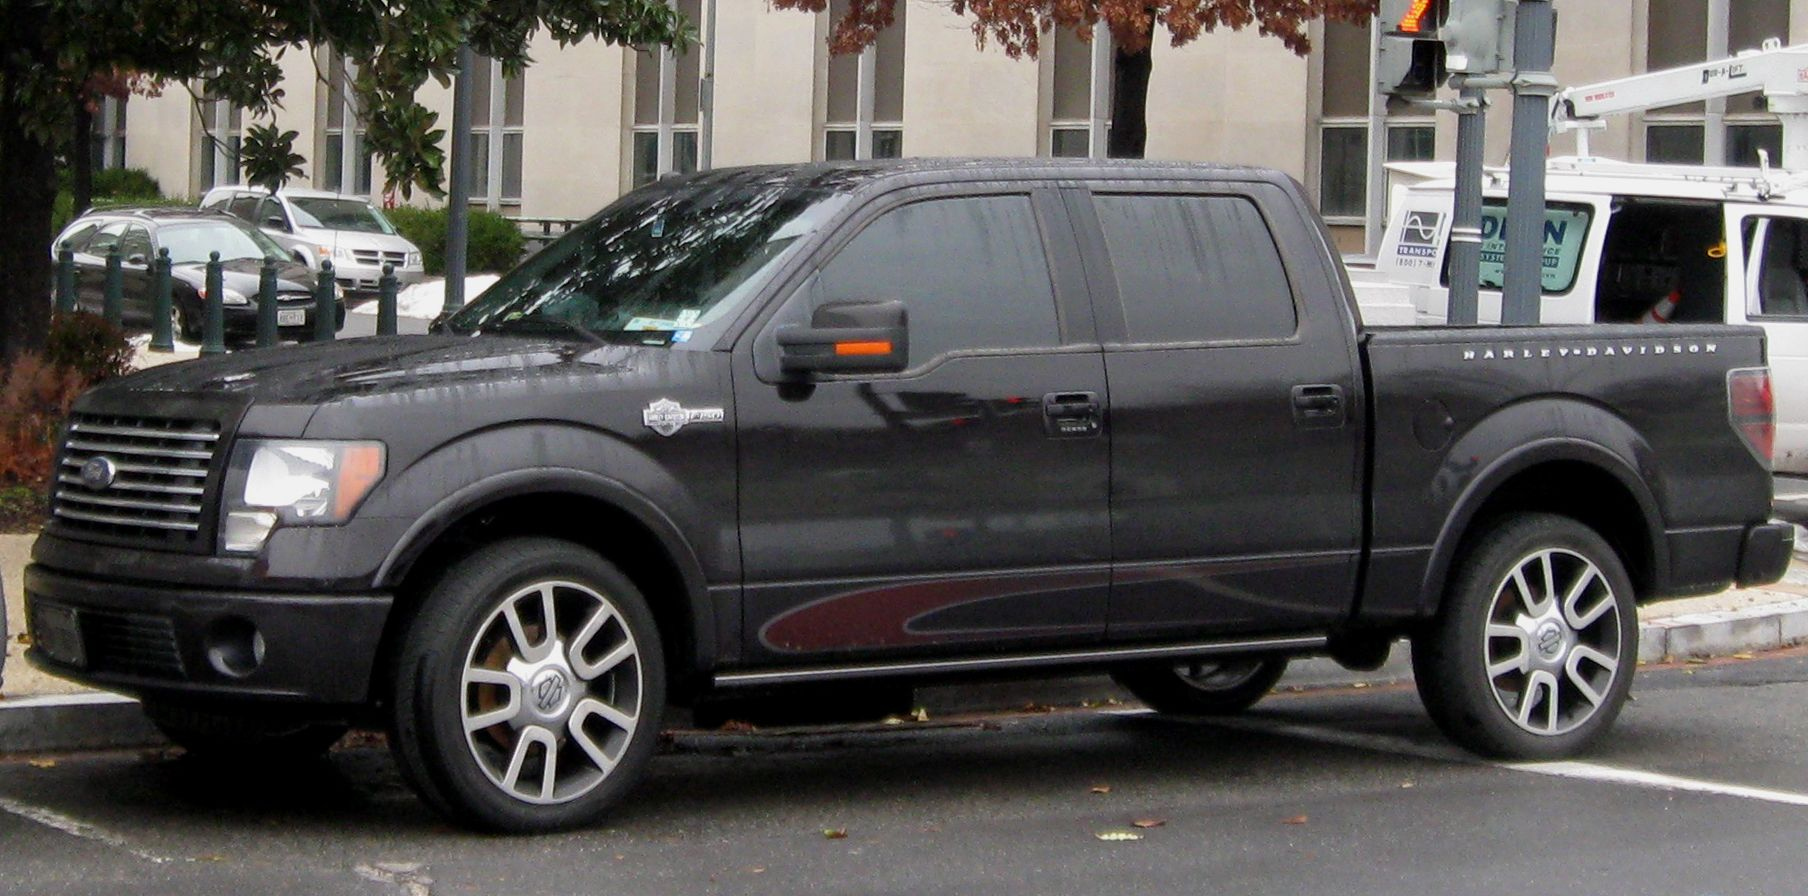 medium resolution of 2010 ford f 150 harley davidson ford 2010 f 150 owners manual pdf download 2010 ford 150 parts accessories amazon for 2010 the f 150 is reworked to be